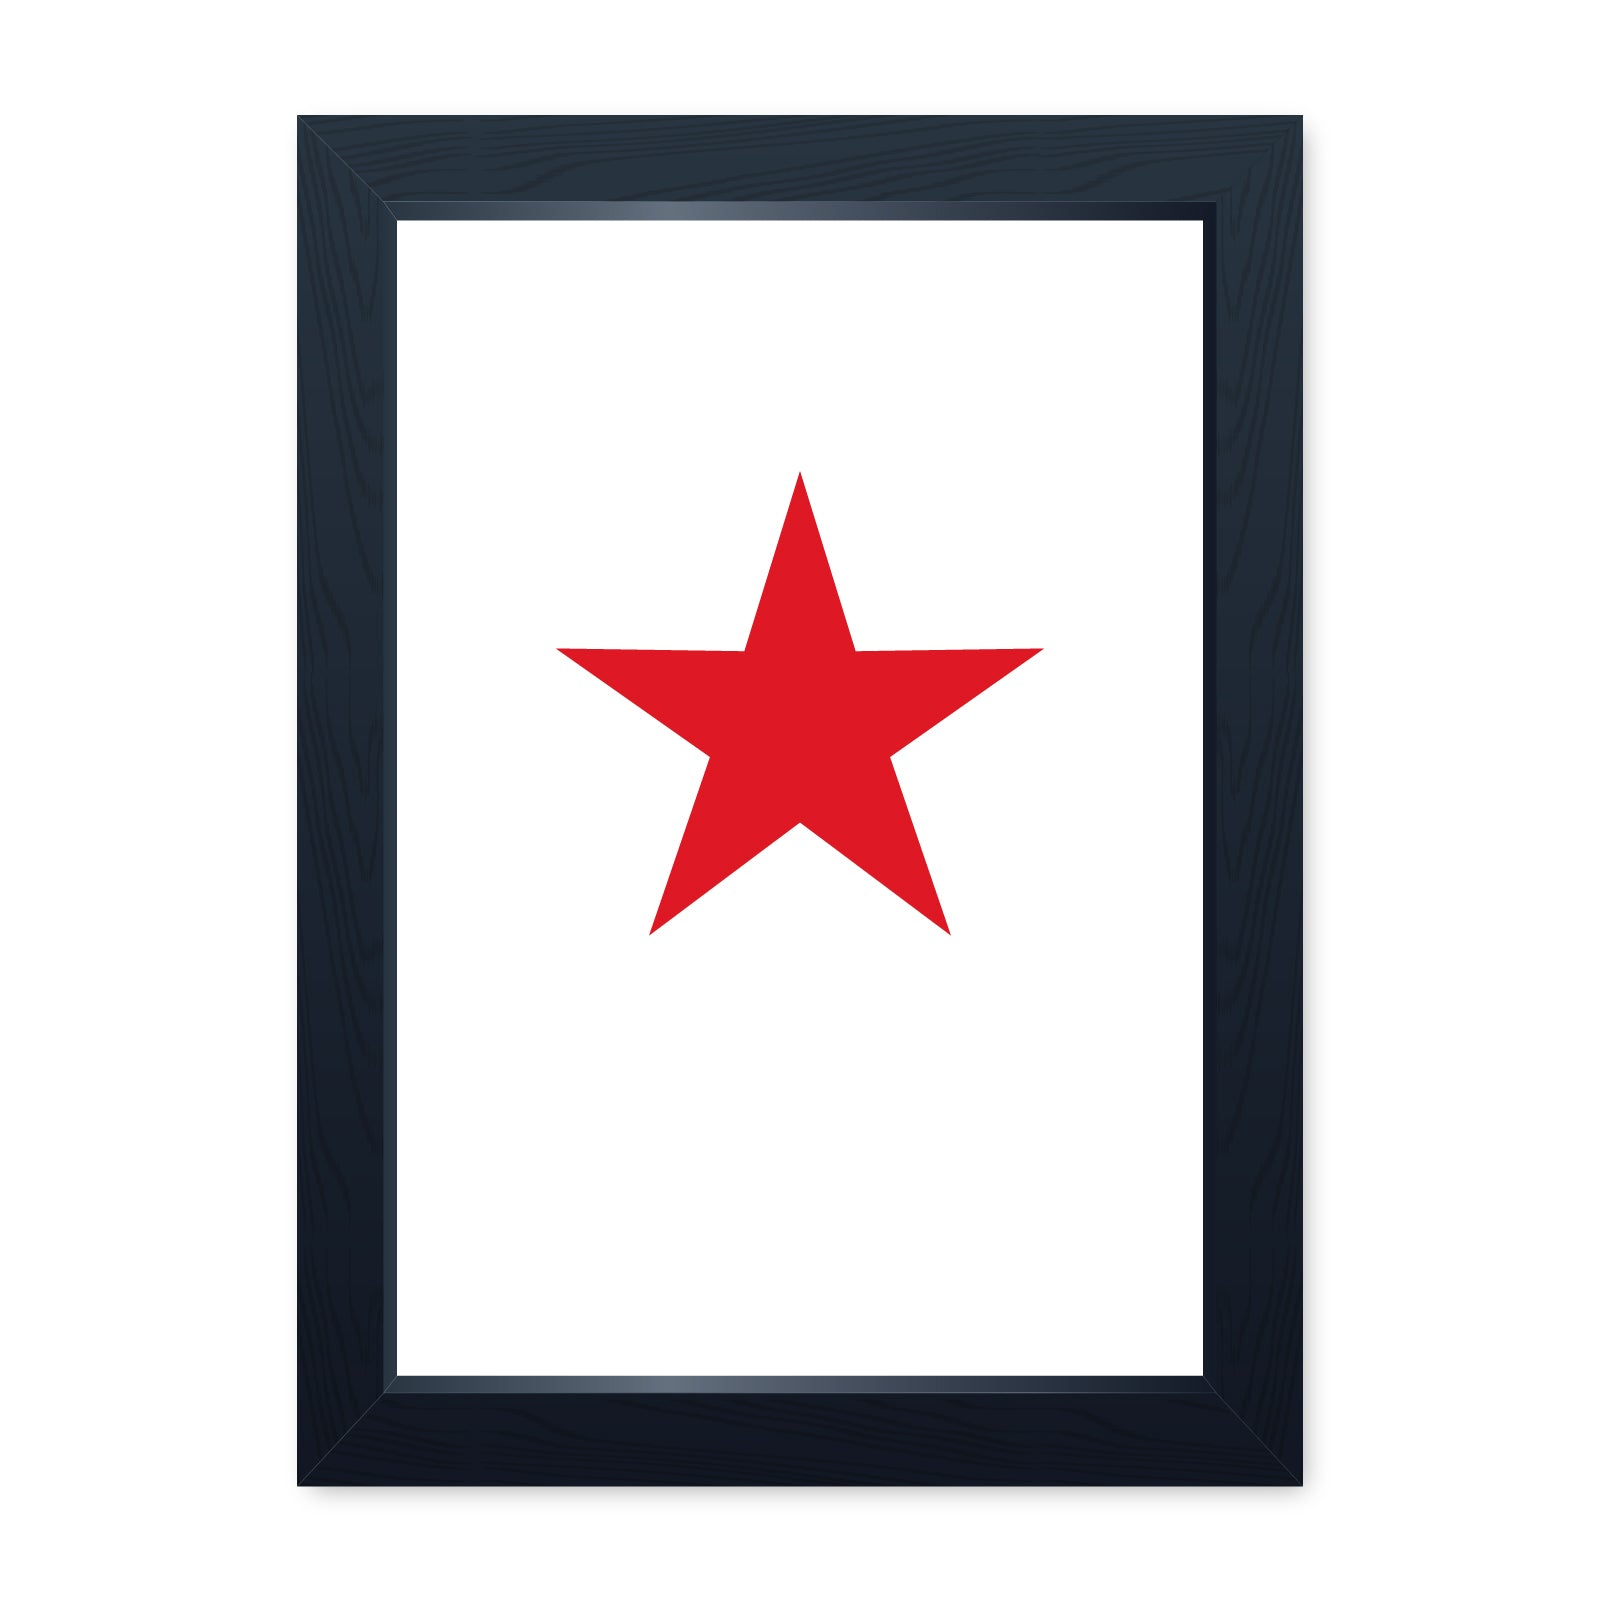 Soviet Red Star, Quality Framed Print - Home Decor Kitchen Bathroom Man Cave Wall Art